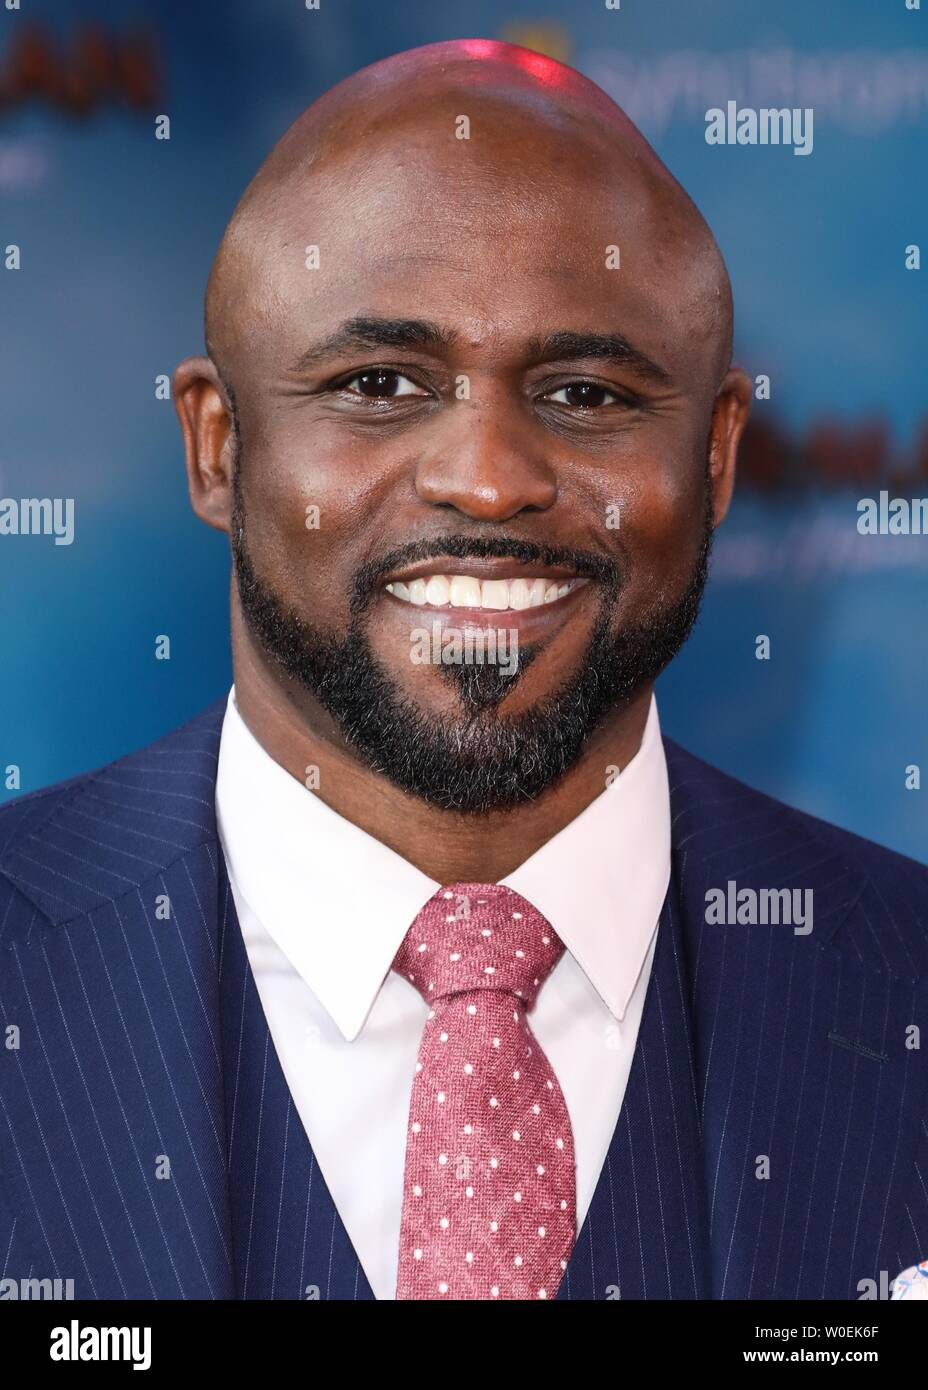 Hollywood, United States. 26th June, 2019. HOLLYWOOD, LOS ANGELES, CALIFORNIA, USA - JUNE 26: Wayne Brady arrives at the Premiere Of Sony Pictures' 'Spider-Man Far From Home' held at the TCL Chinese Theatre IMAX on June 26, 2019 in Hollywood, Los Angeles, California, United States. (Photo by David Acosta/Image Press Agency) Credit: Image Press Agency/Alamy Live News Stock Photo